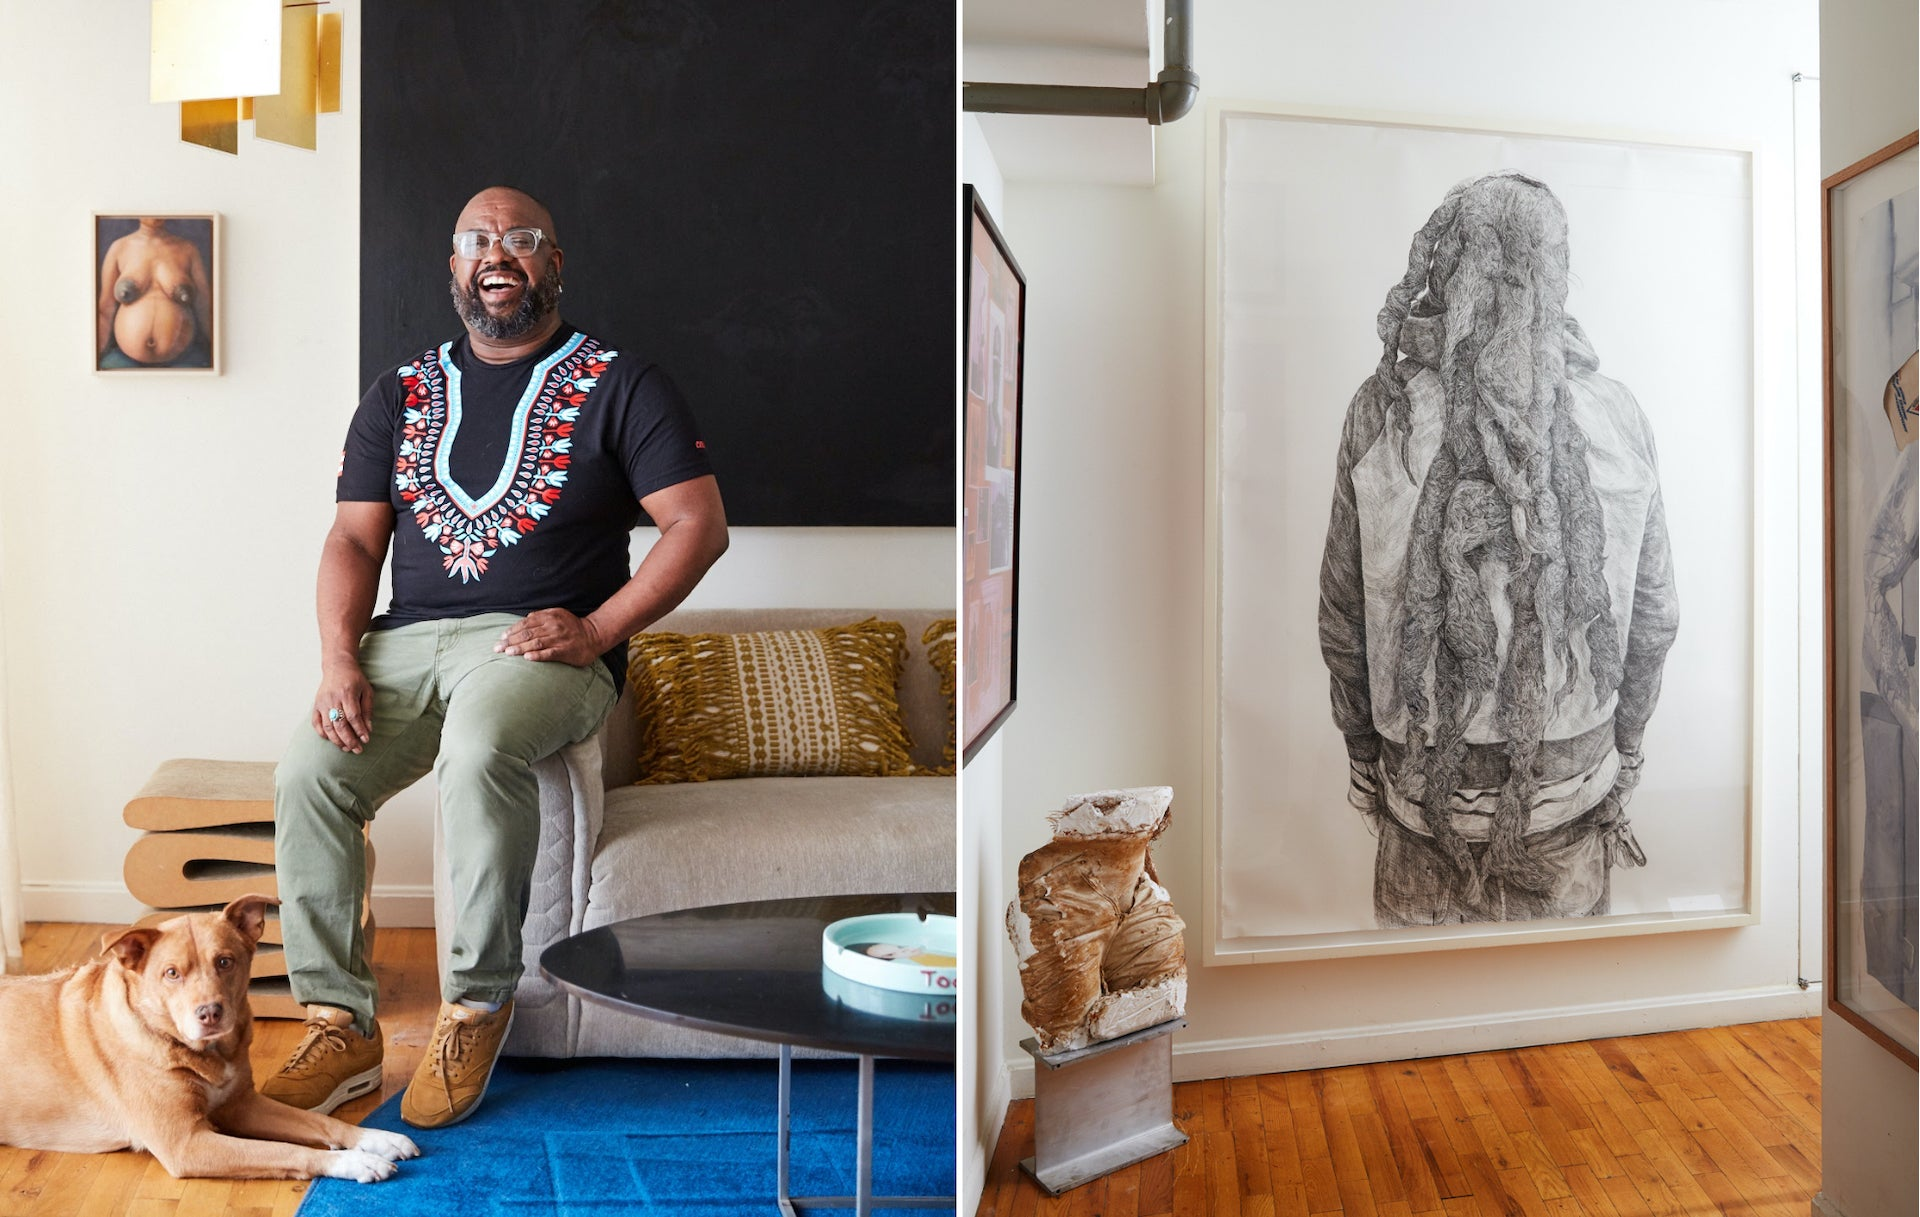 Left: Interior designer Leyden Lewis and his dog Nika in their Brooklyn loft. Right: An ink drawing of a Rastafarian's back by Chinatsu Seya and a sculpture by Lewis himself greet guests in his entrance foyer. Photos © David A. Land